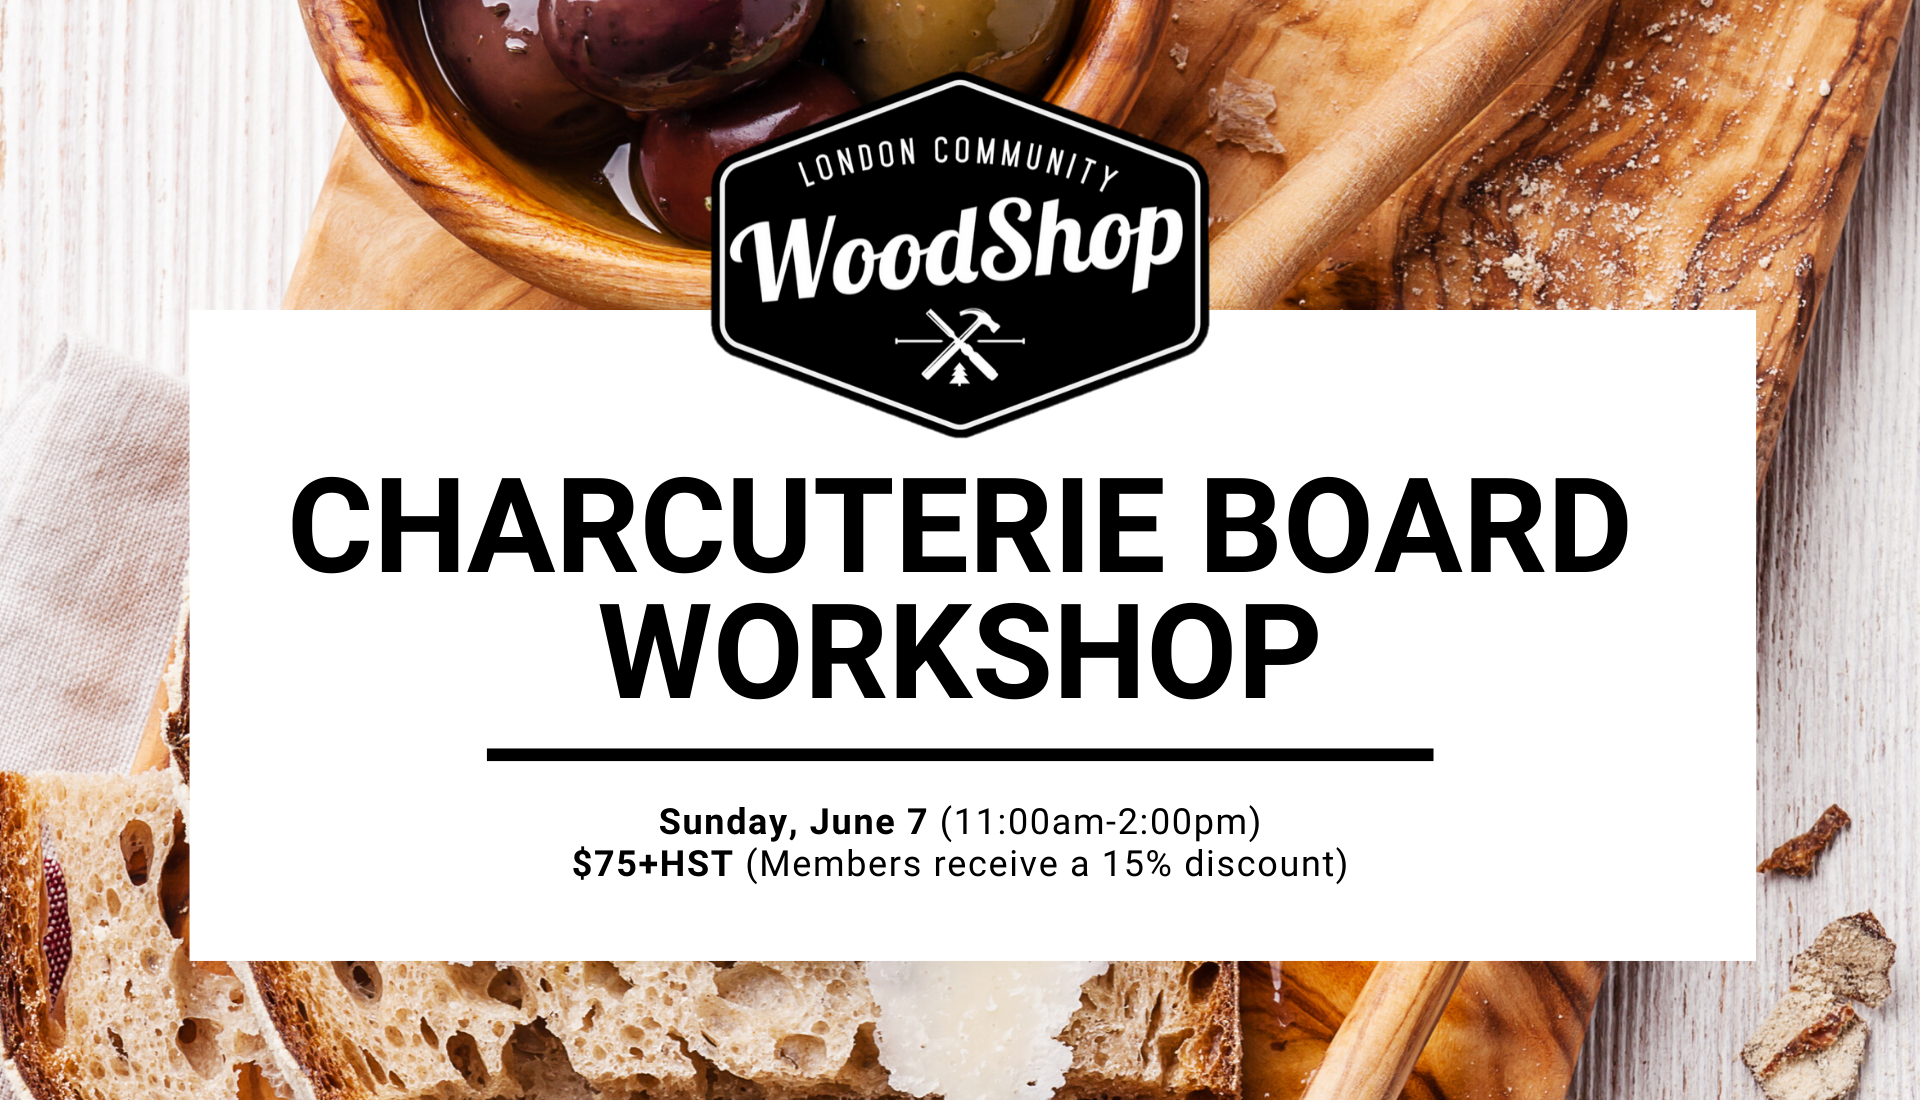 Sunday, June 7 11-2pm Charcuterie Board Workshop